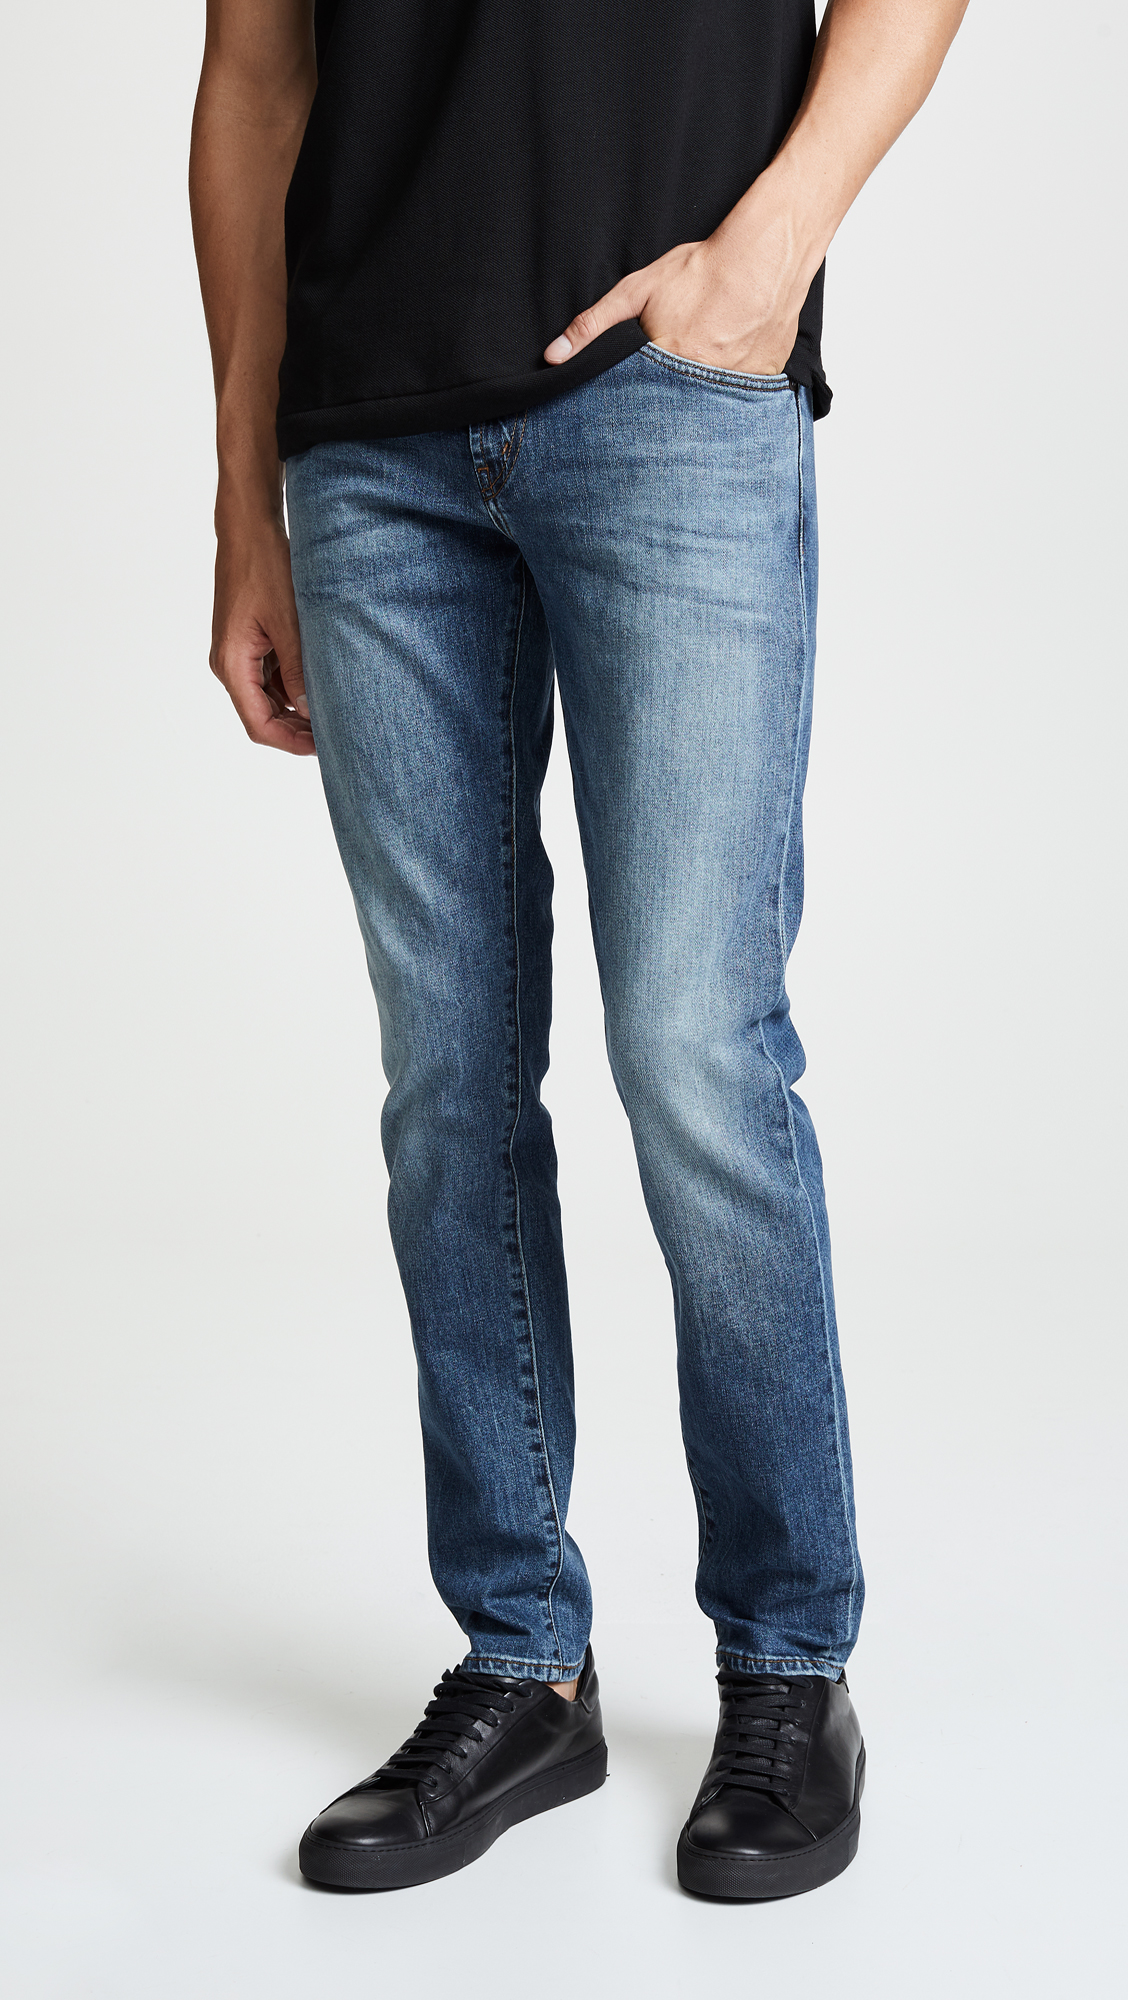 j brand jeans, men's stetch jeans, washed denim, skinny jeans, tapered jeans